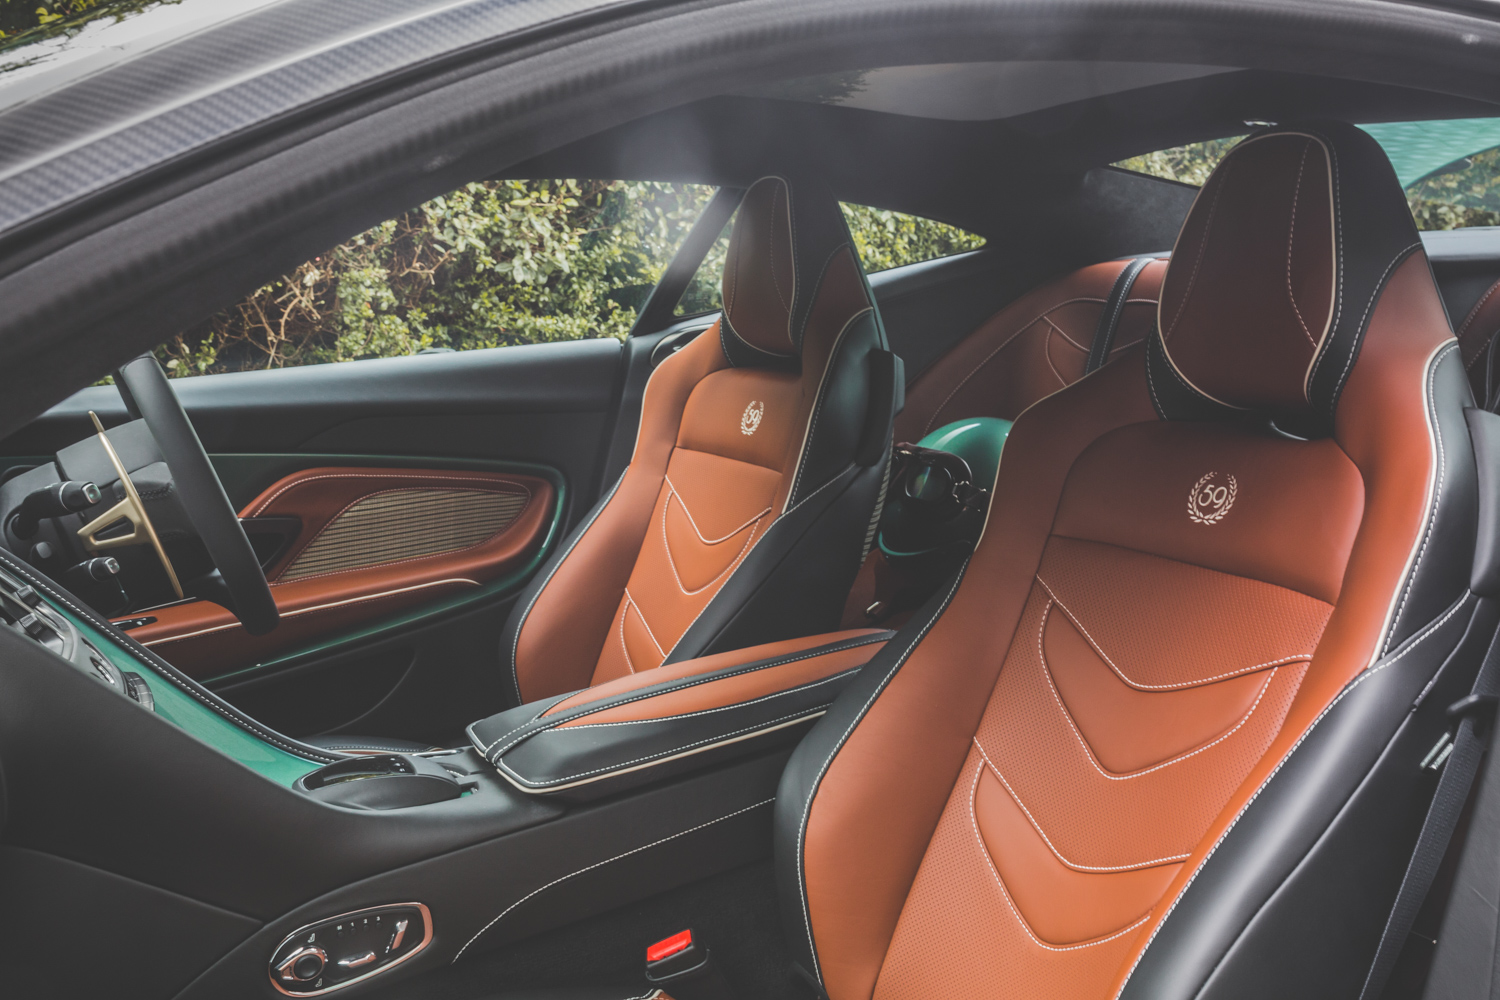 Aston Martin DBS 59 interior seats